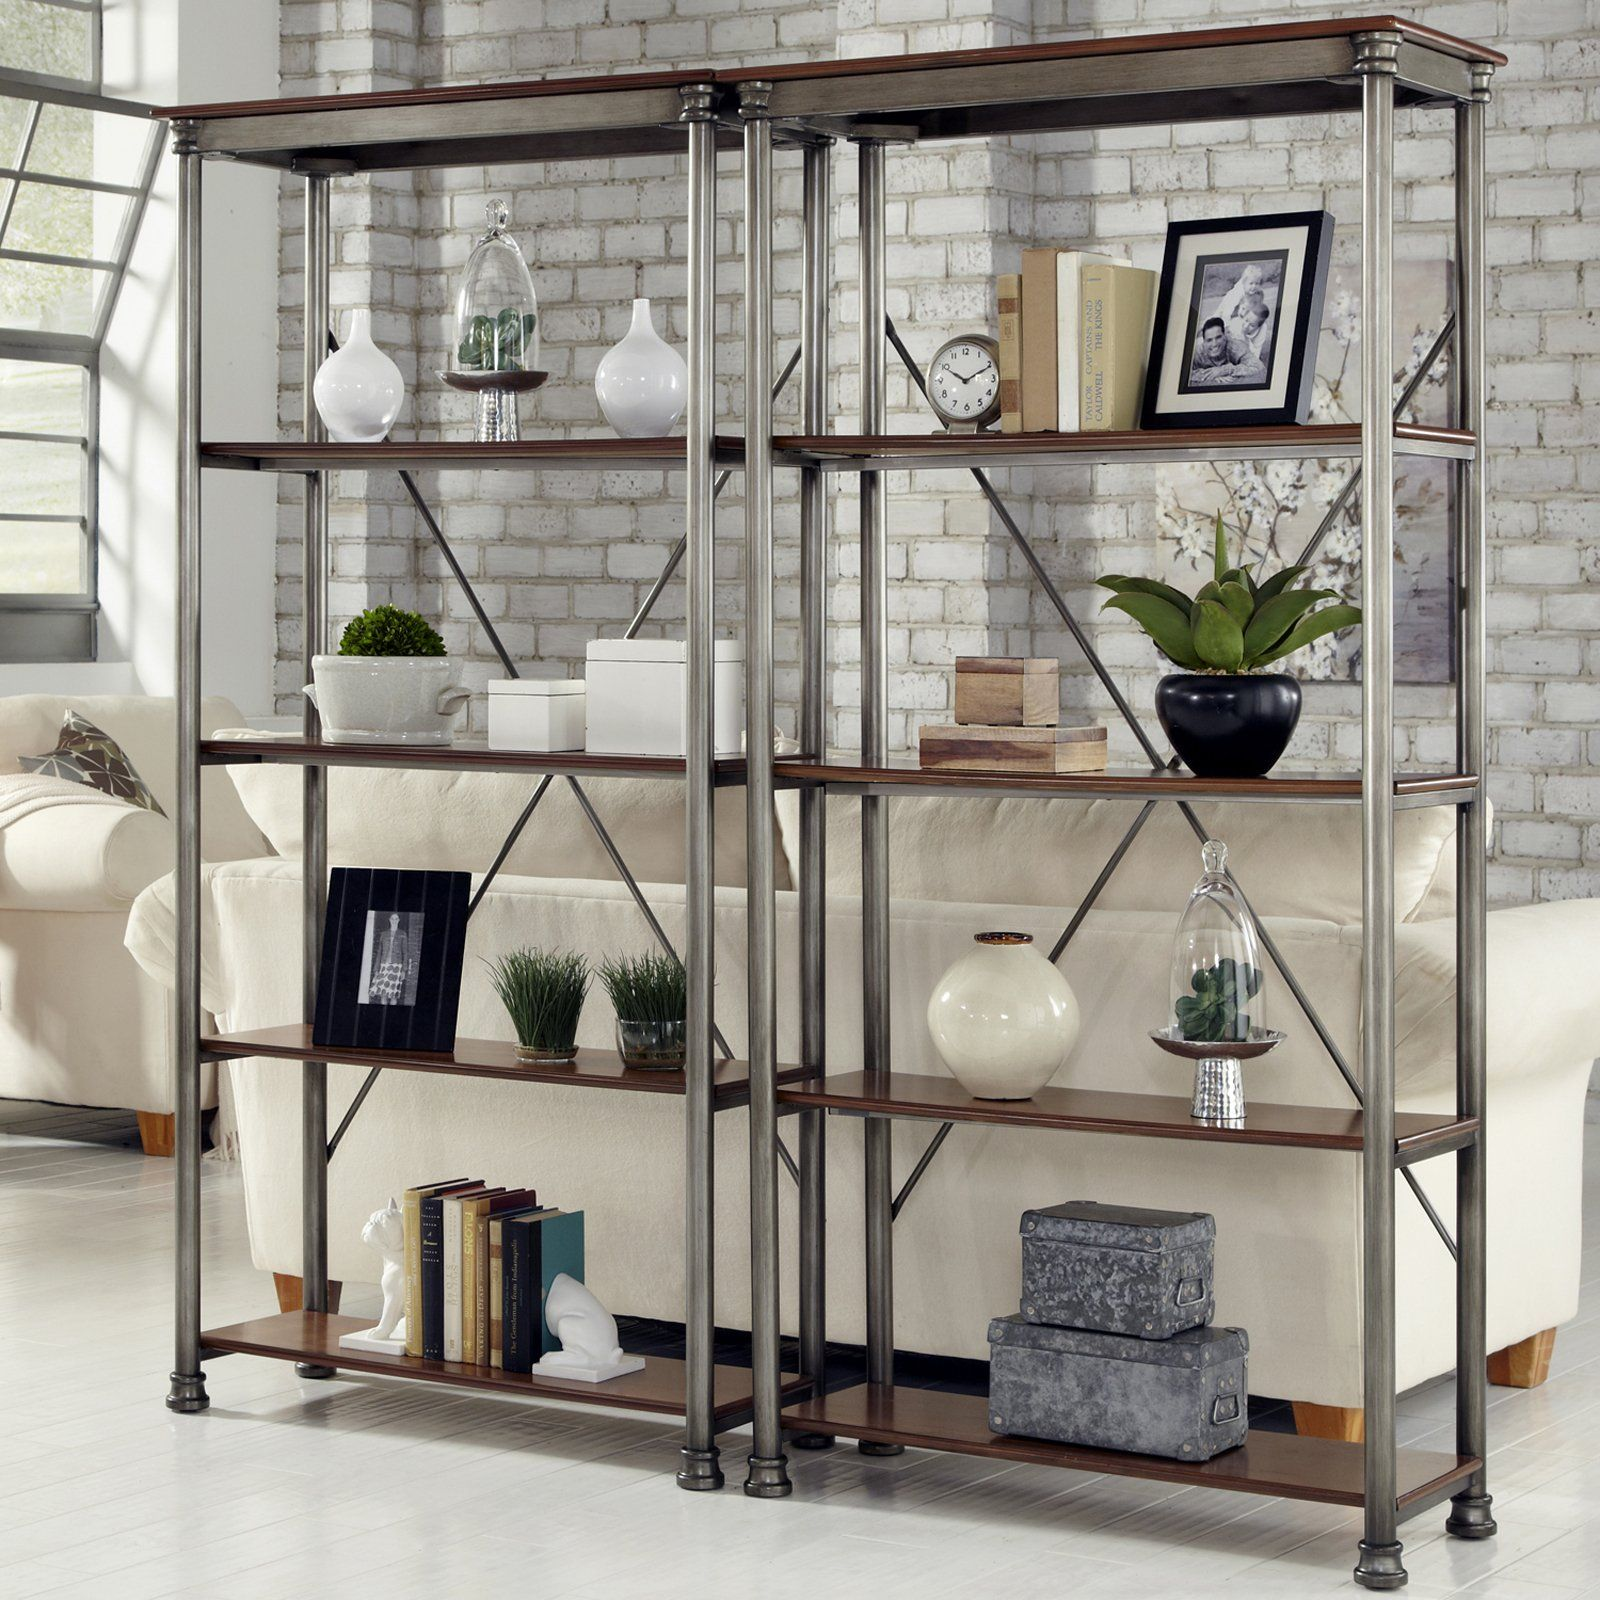 Kitchen shelving units  Have to have it Home Styles The Orleans MultiFunction  Shelf Unit